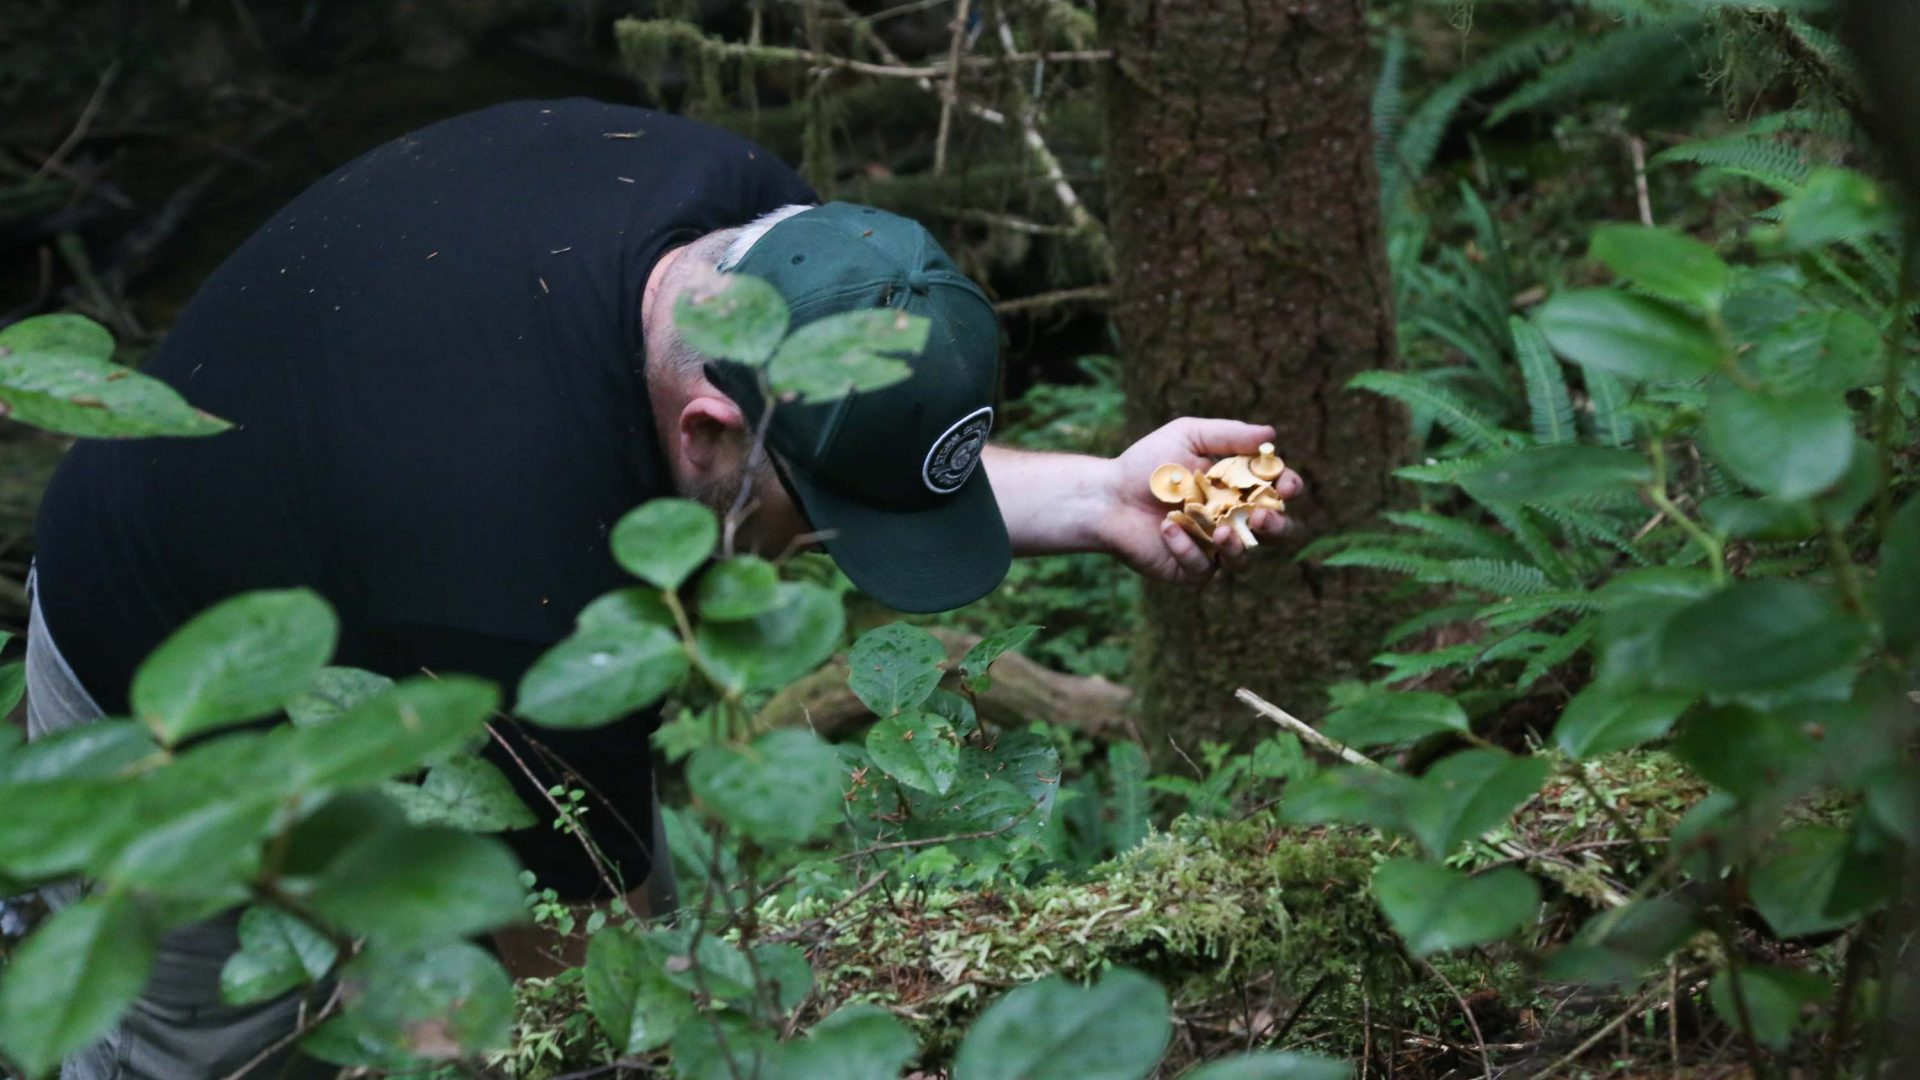 Ian Riddick has his hands full of golden chanterelles.